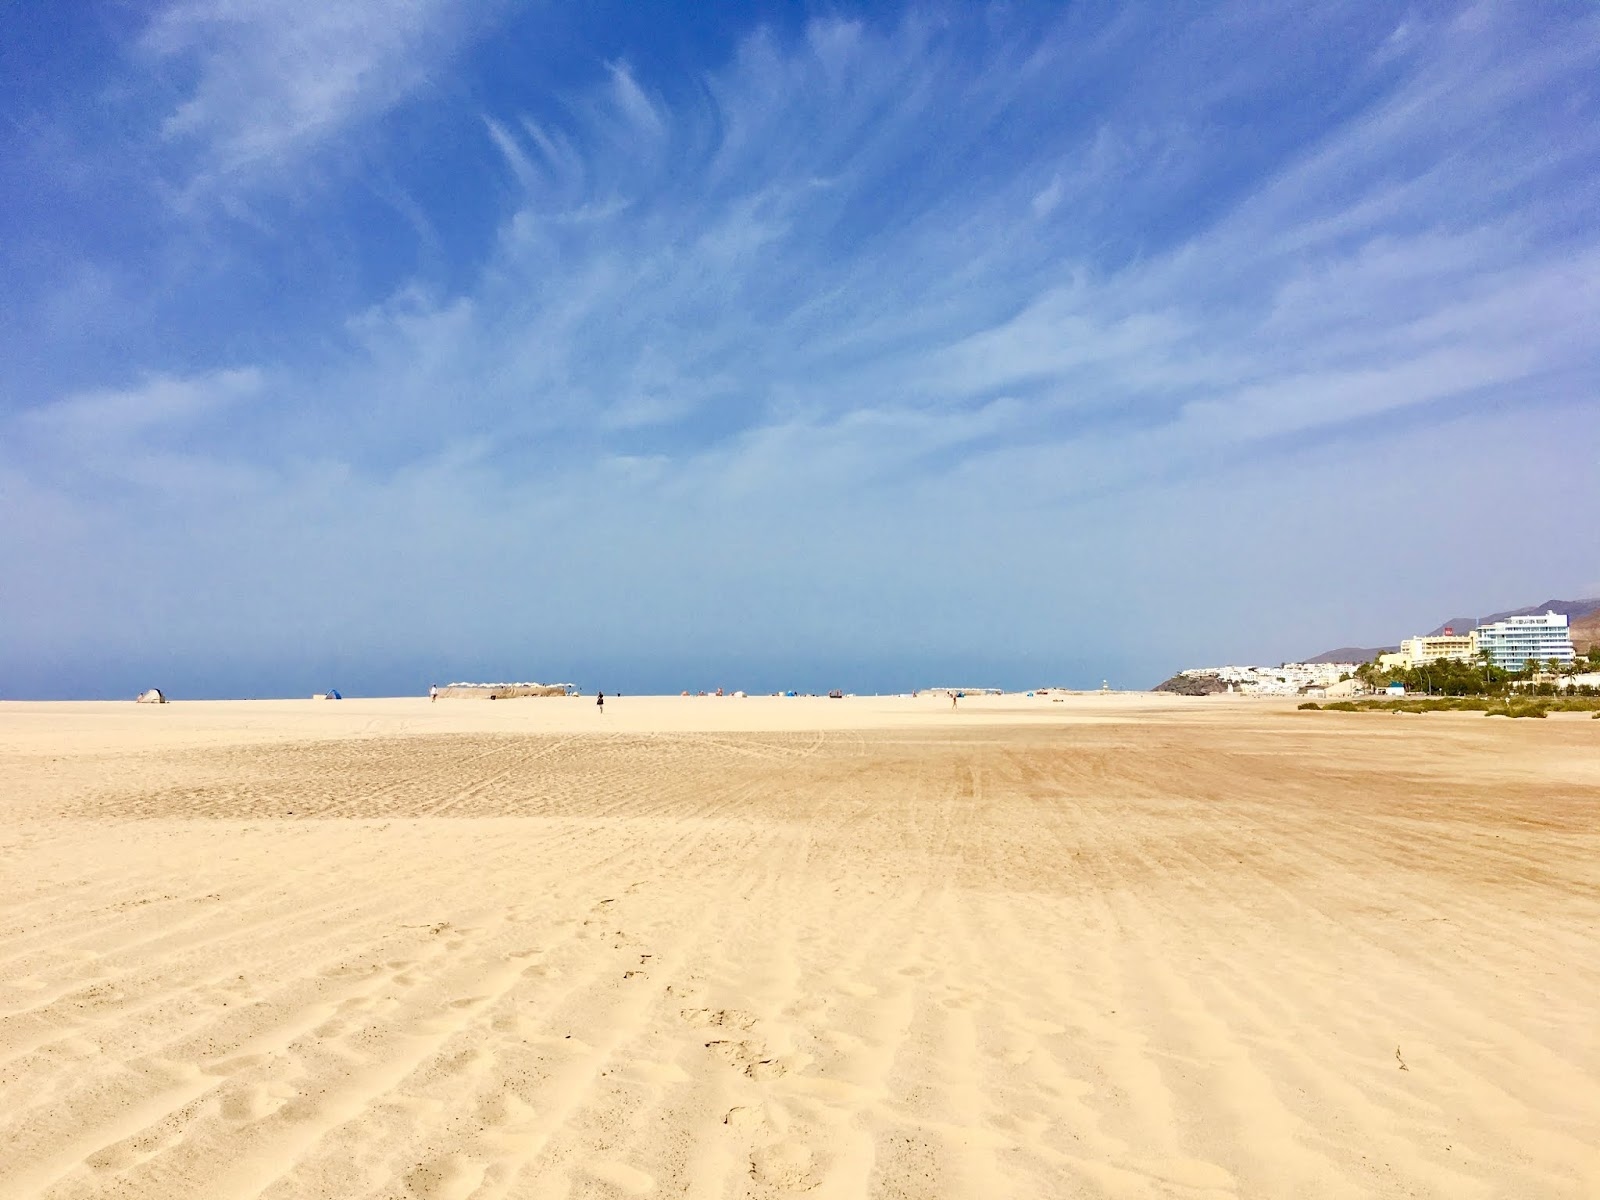 best things to do in fuerteventura, what to do in fuerteventura, fuerteventura, fuerteventura things to do, fuerteventura holiday, canary islands things to do, travel blog